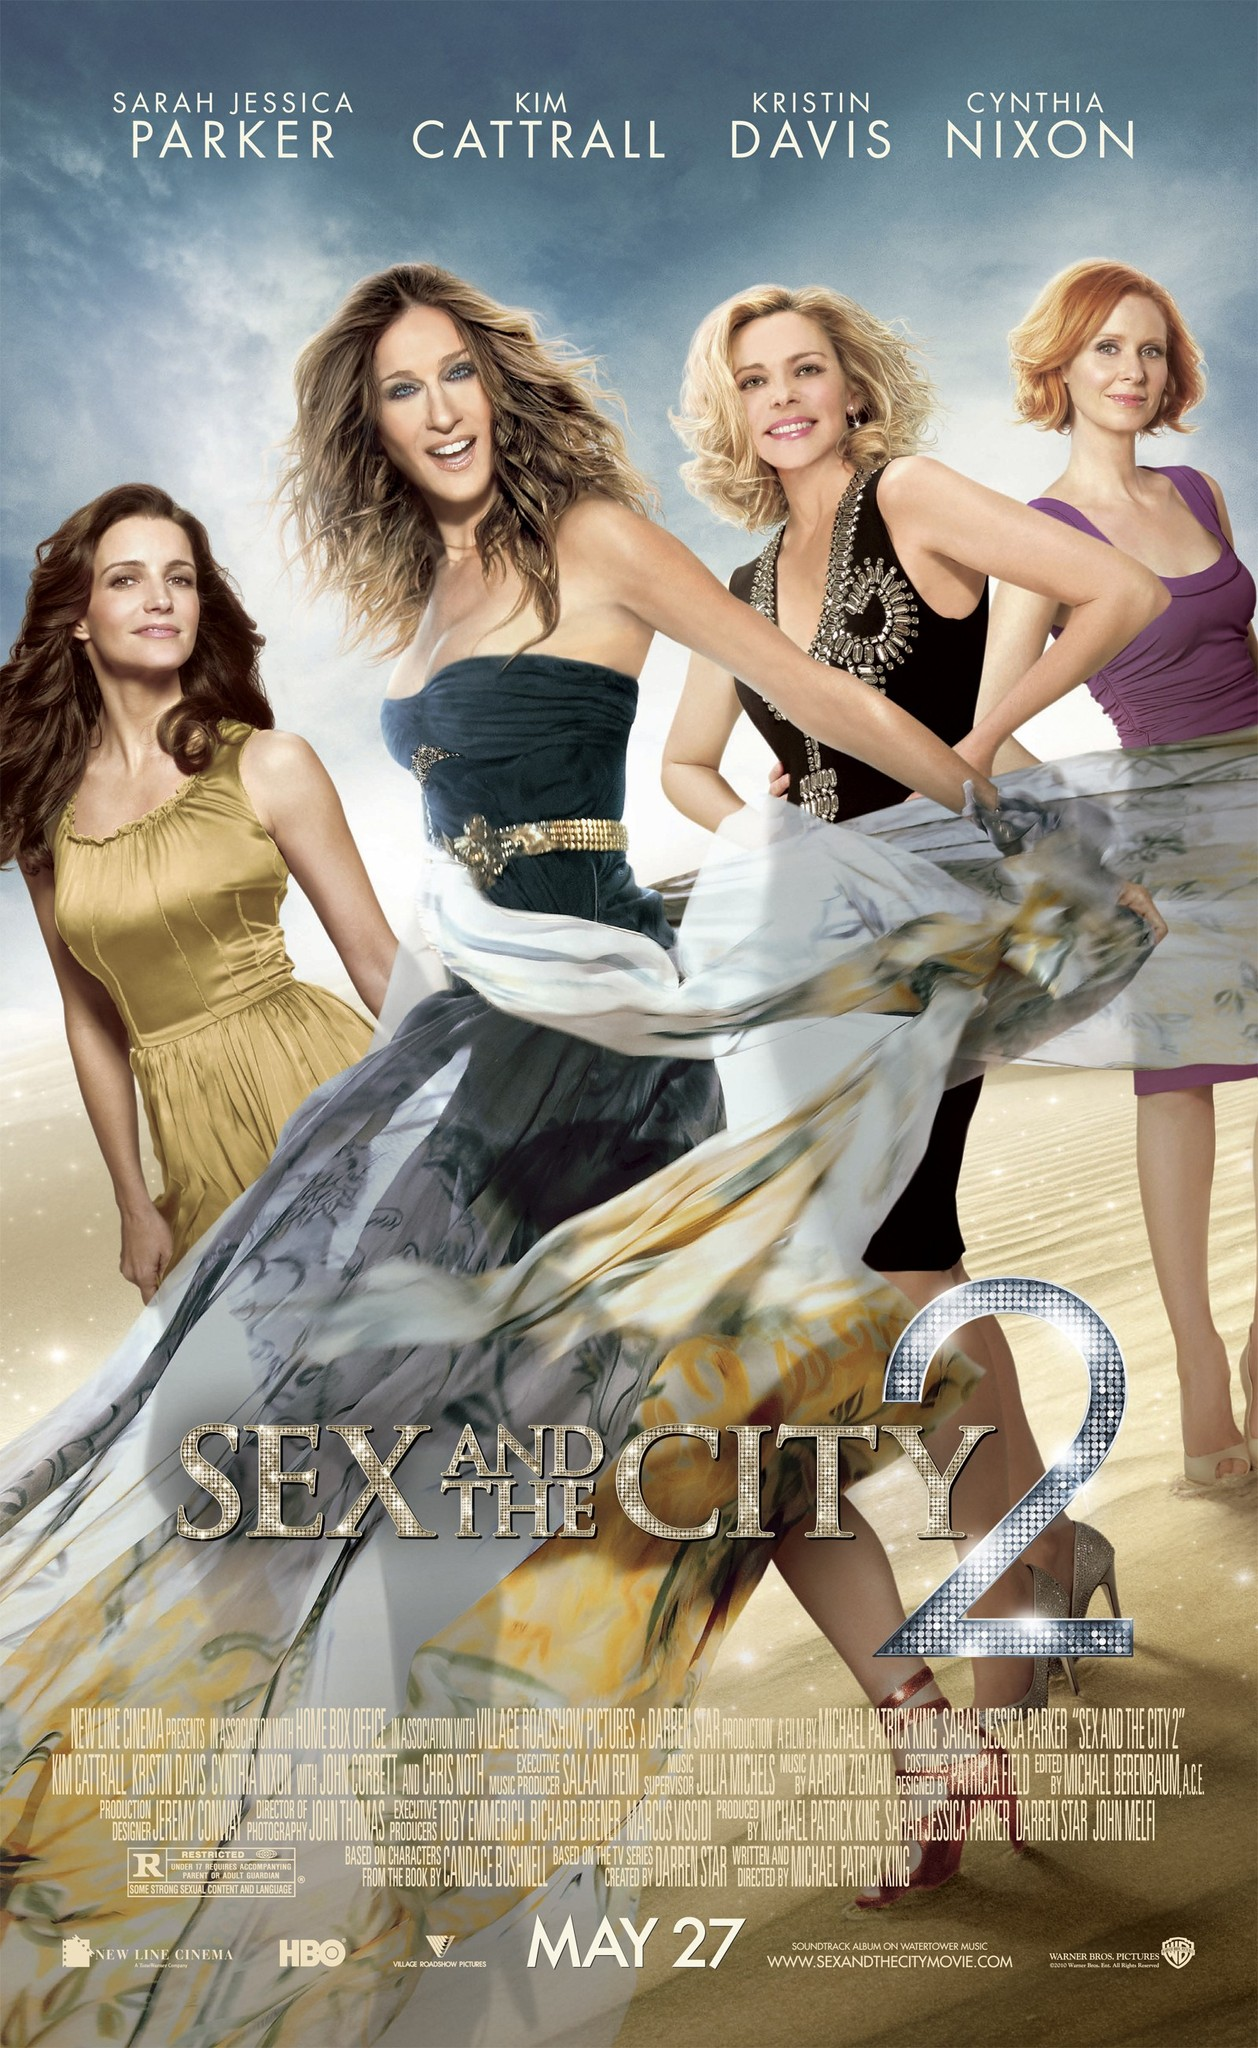 Sex and the city movie lily